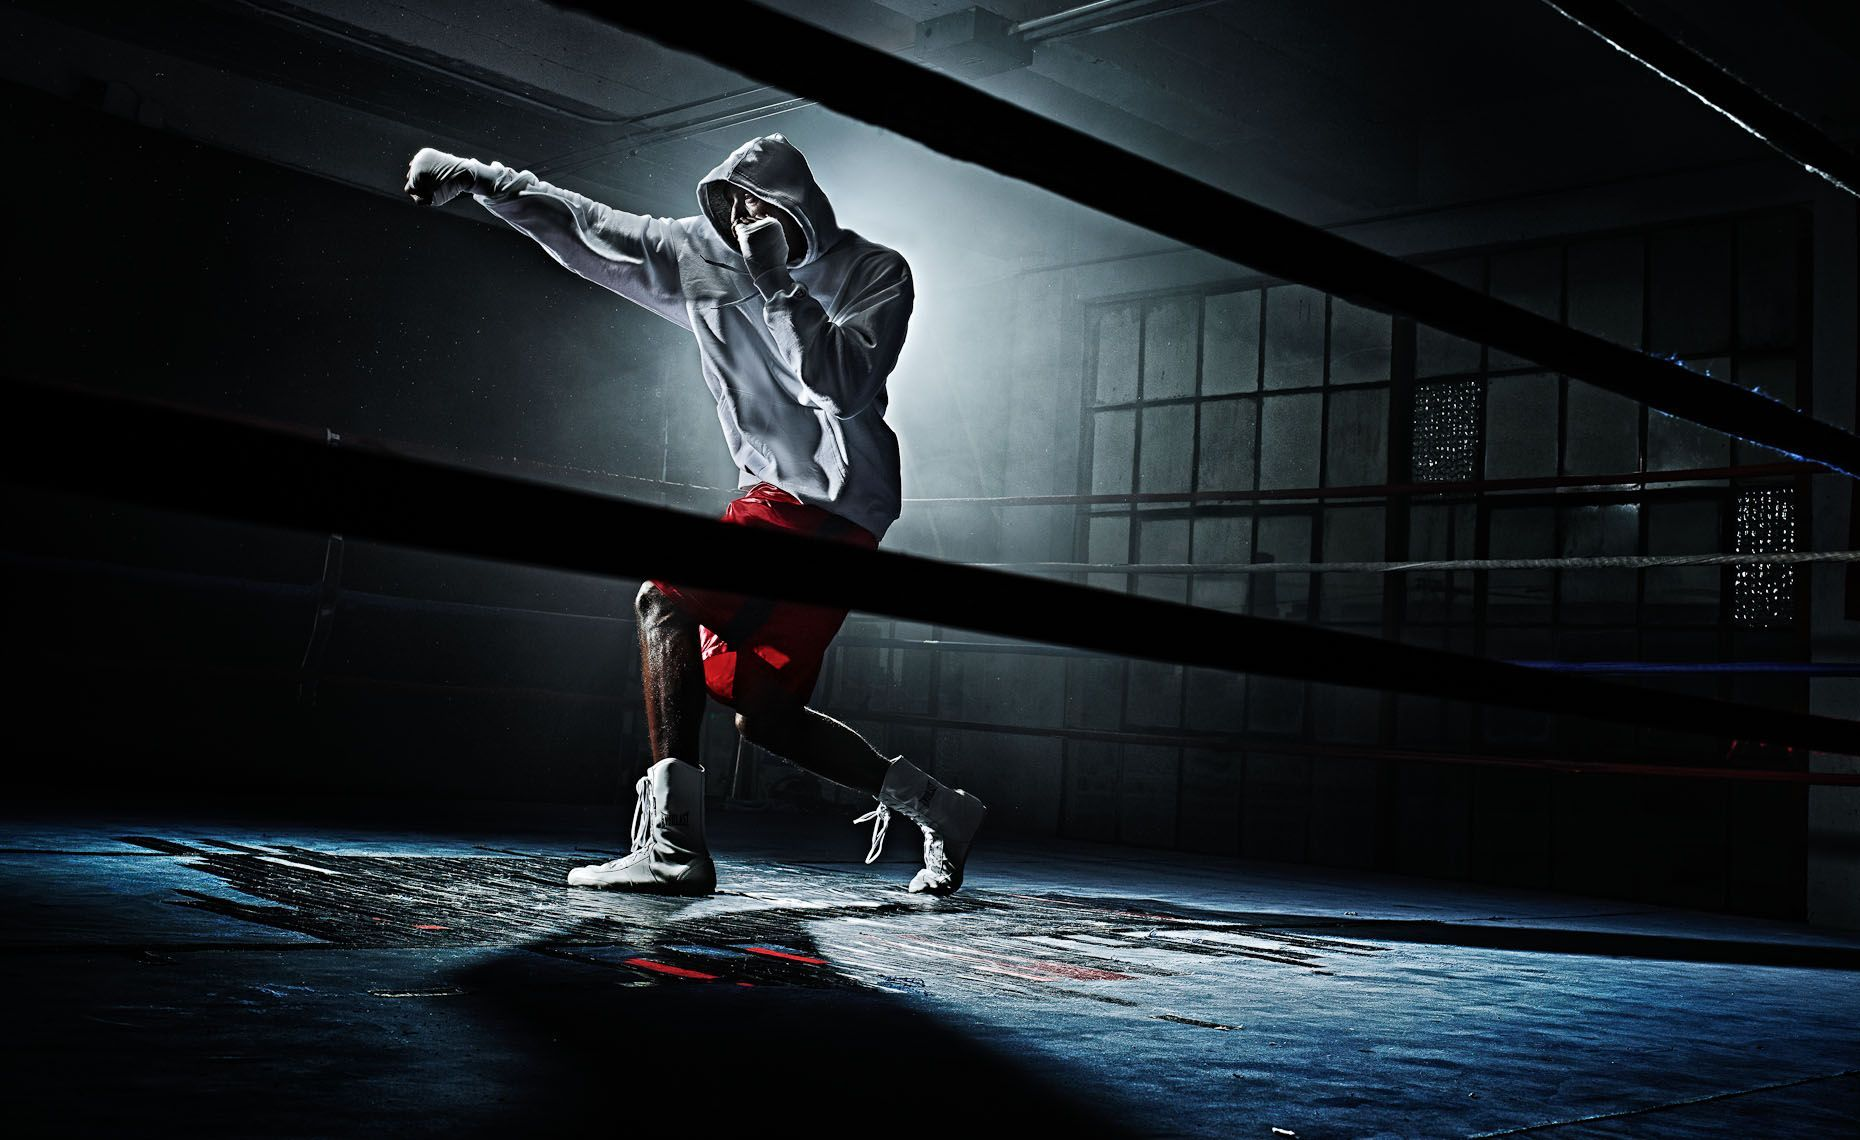 Tim Tadder is a renowned advertising photographer and sports